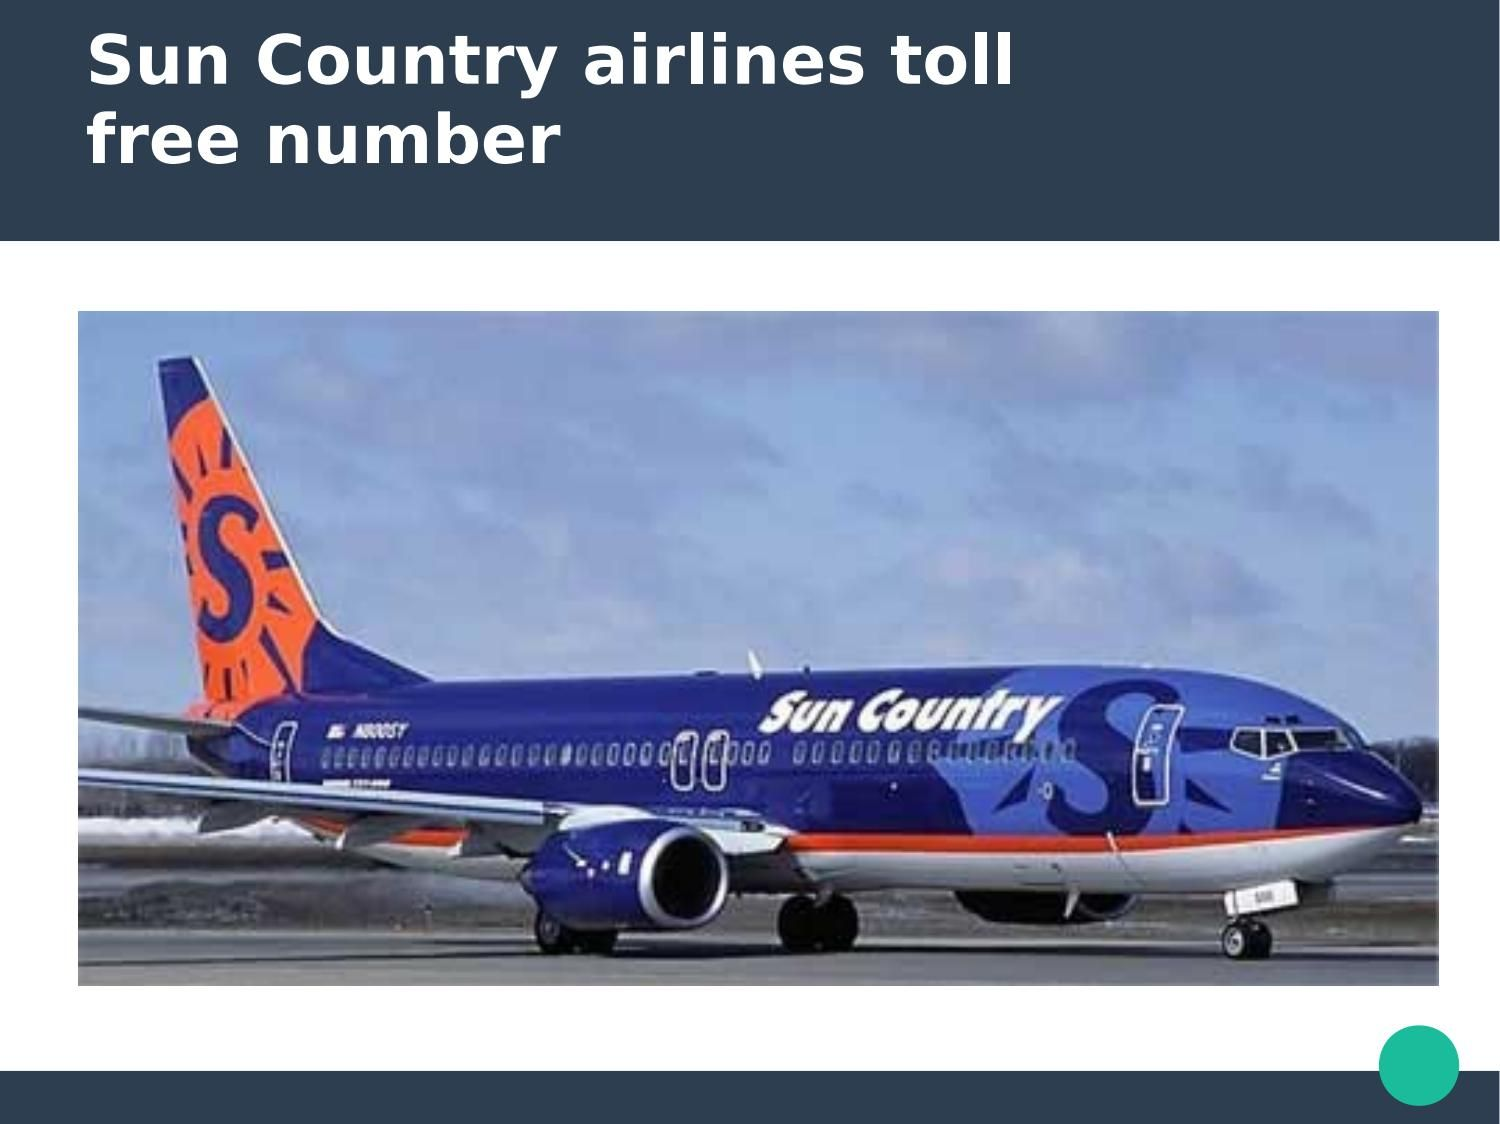 Sun country airlines Customer Support Phone Number 1888